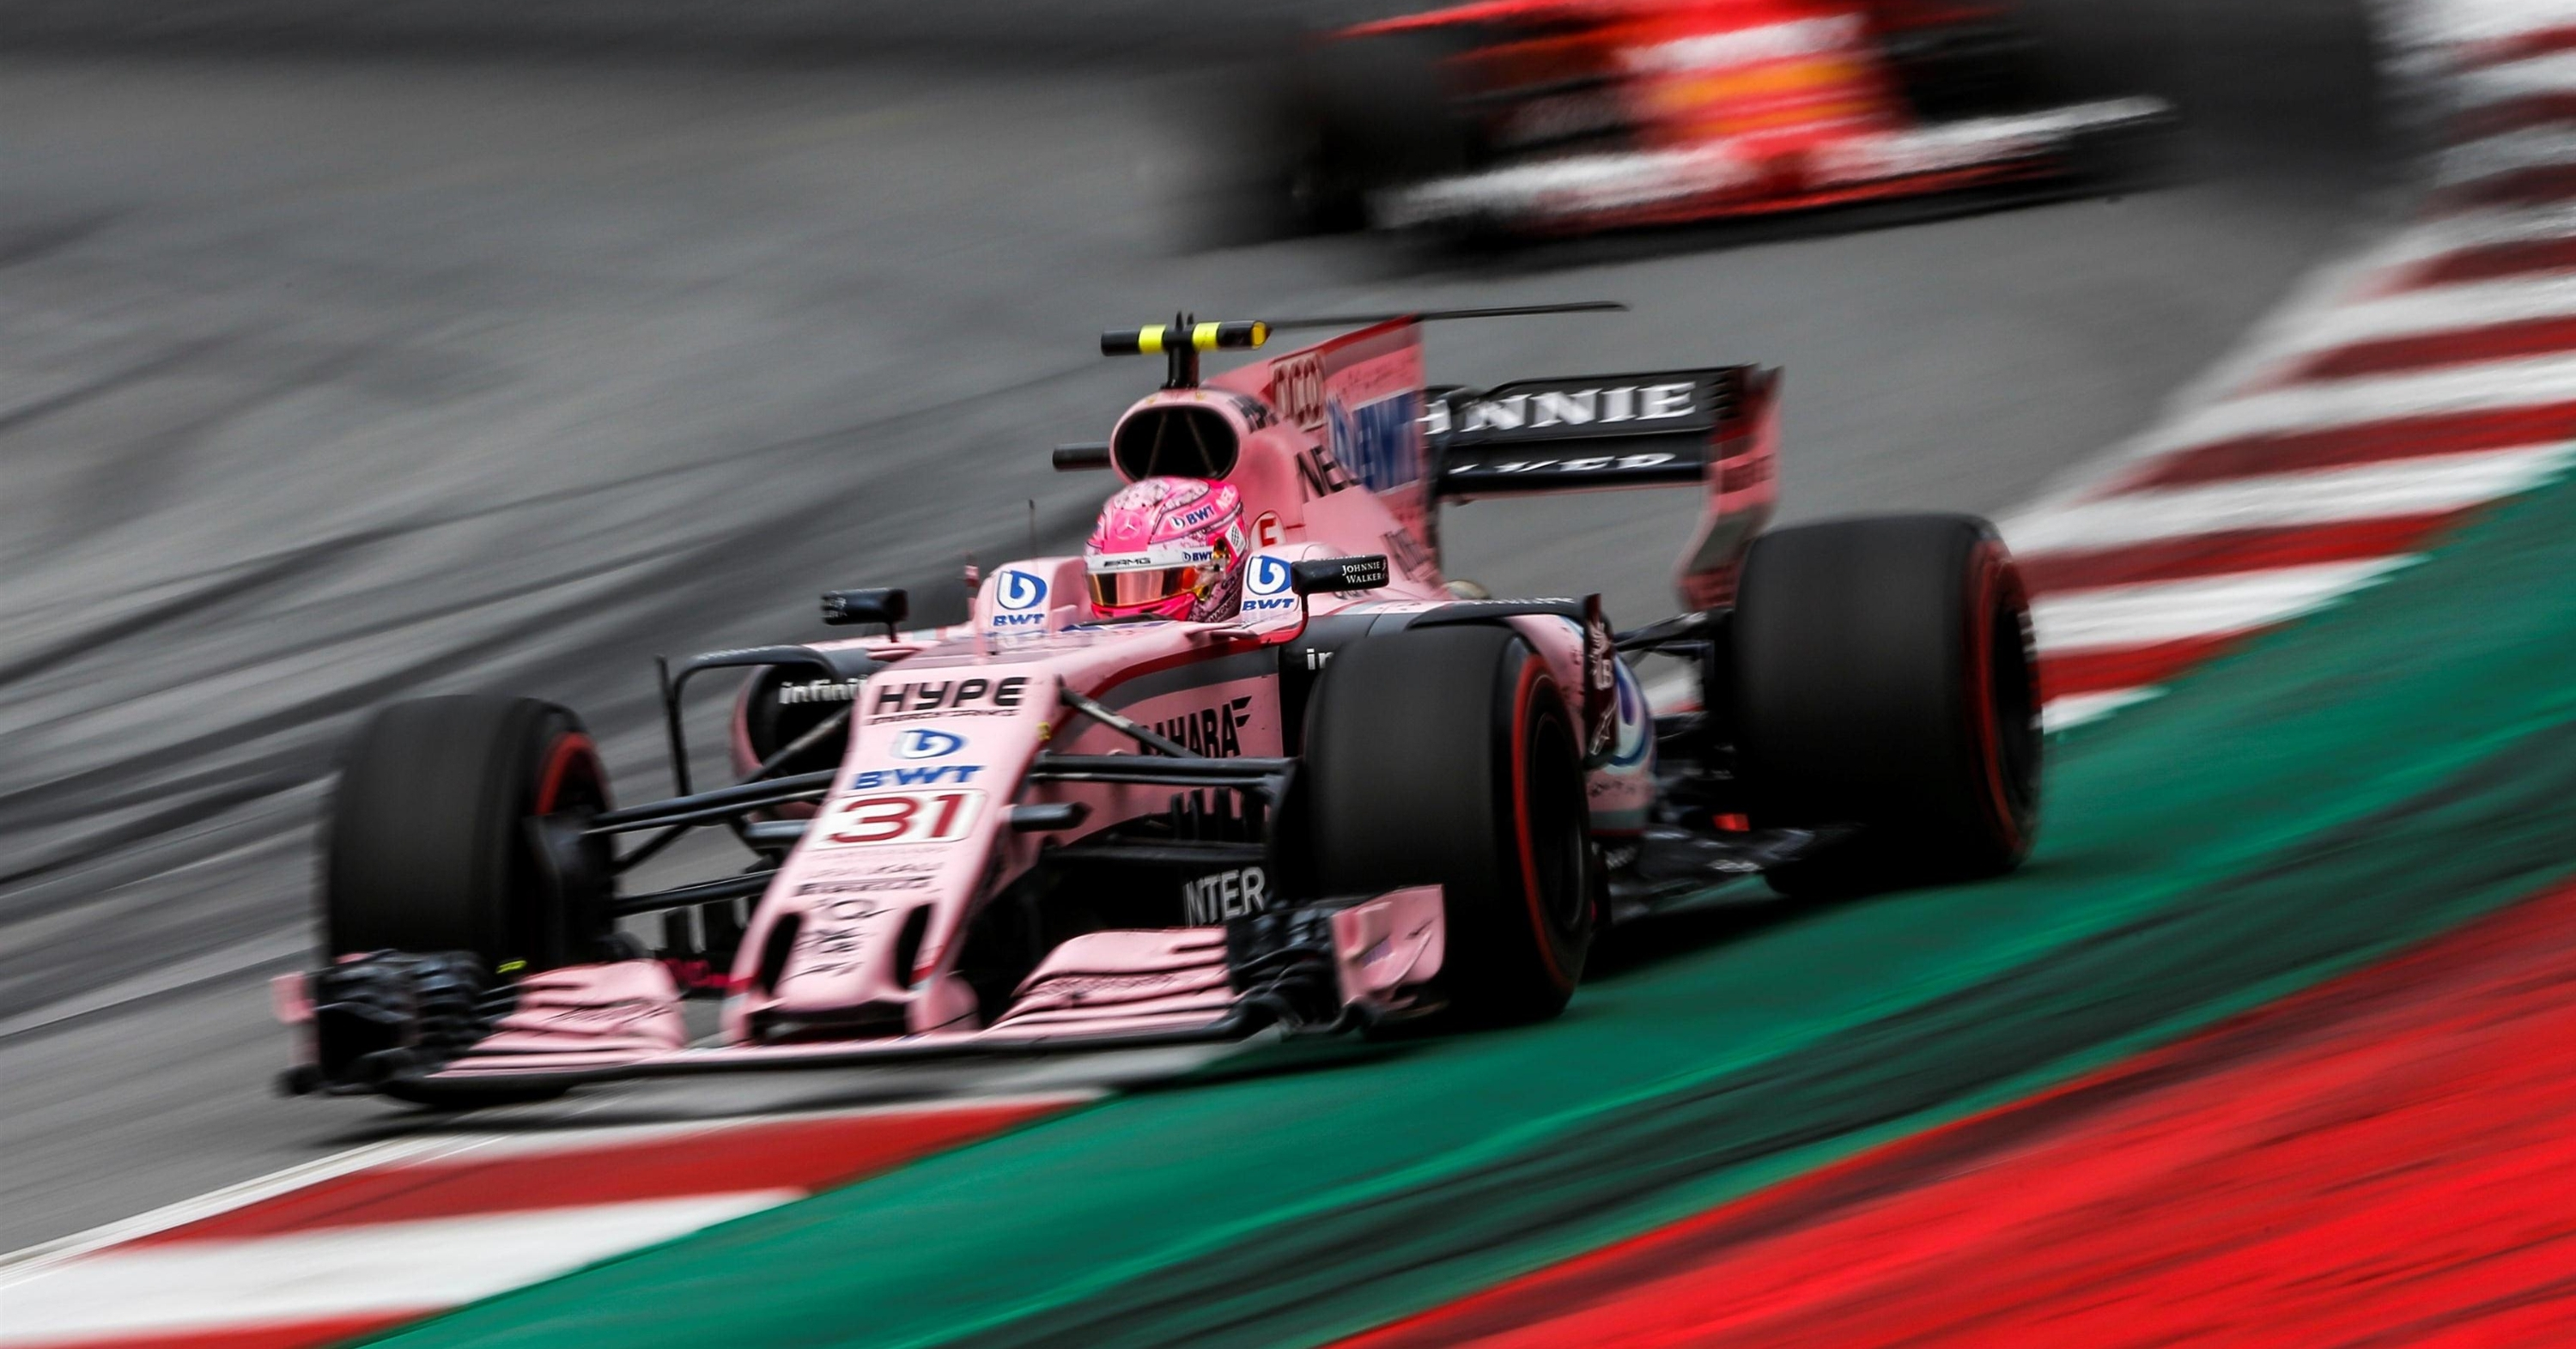 British Grand Prix at risk as Silverstone owners play tough